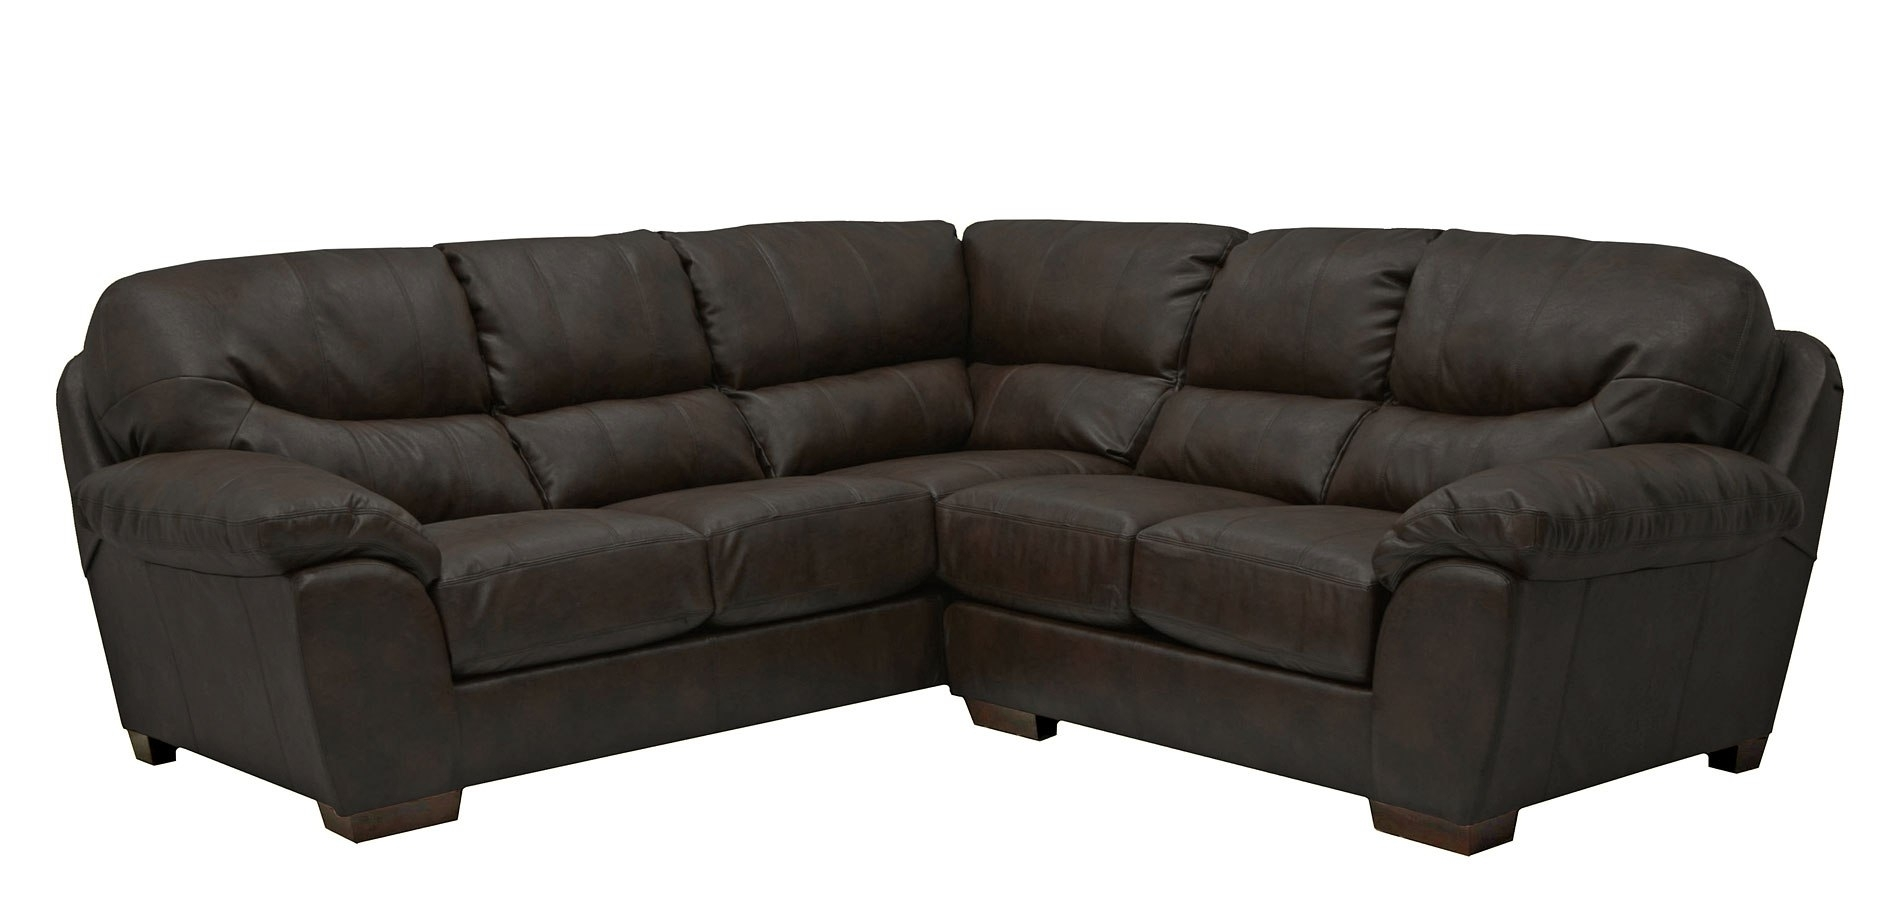 Lawson Modular Sectional (Godiva) Jackson Furniture | Furniture Cart in Jackson 6 Piece Power Reclining Sectionals (Image 22 of 30)